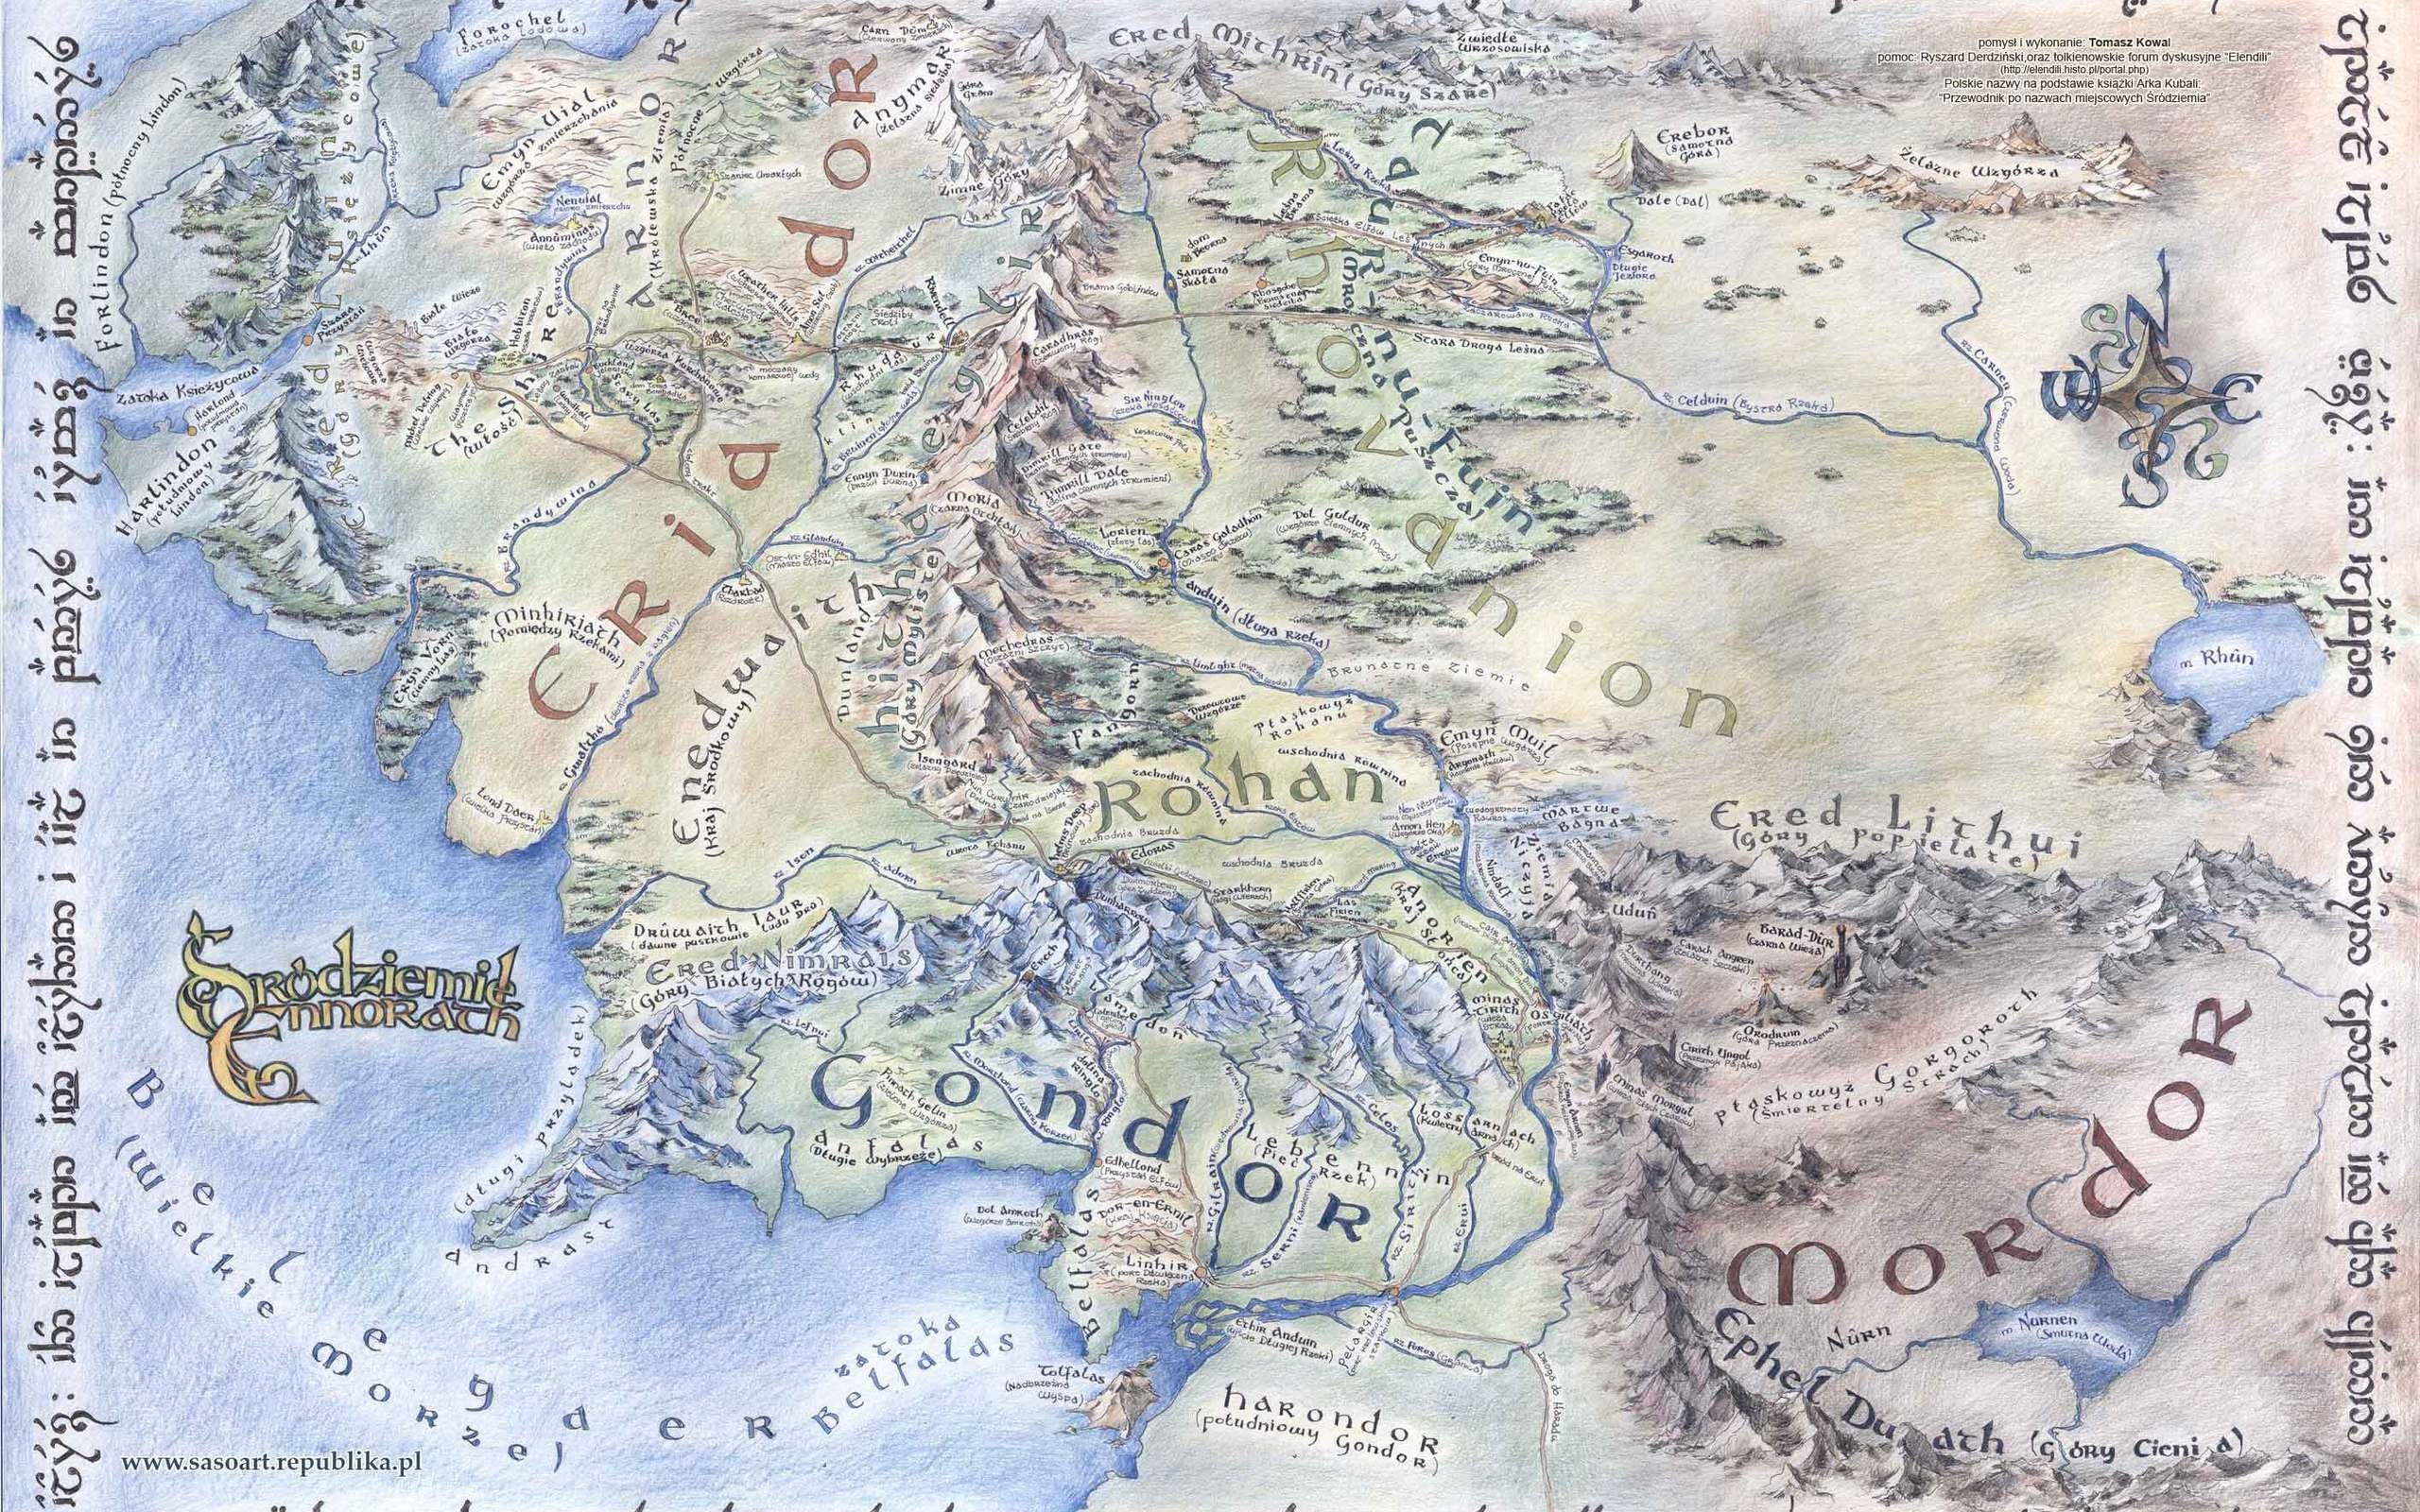 Map of Middle Earth Wallpaper (42+ images) S In The Hobbit Map Of Middle Earth Tolkien on elves in the hobbit, lotr in the hobbit, gollum in the hobbit, aragorn in the hobbit, arwen in the hobbit, the shire in the hobbit, rivendell in the hobbit,